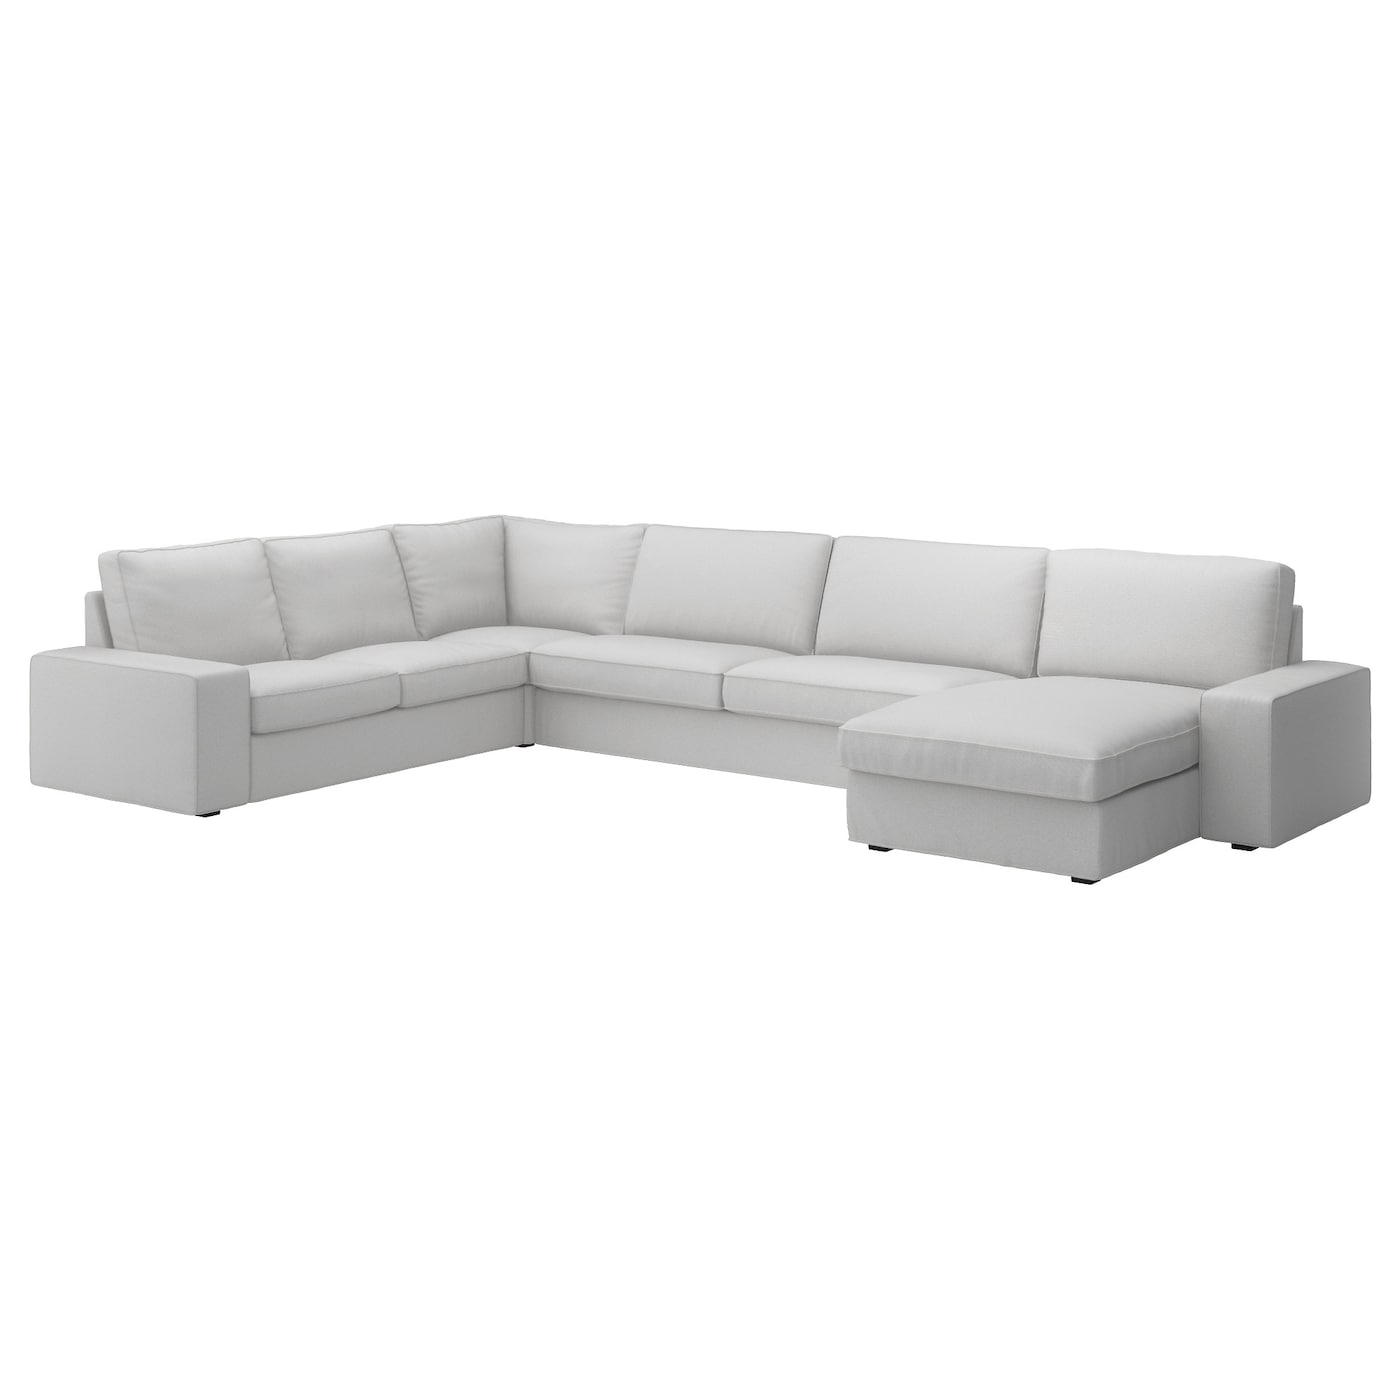 KIVIK Corner sofa 23  32 and chaise longue Ramna light grey   IKEA